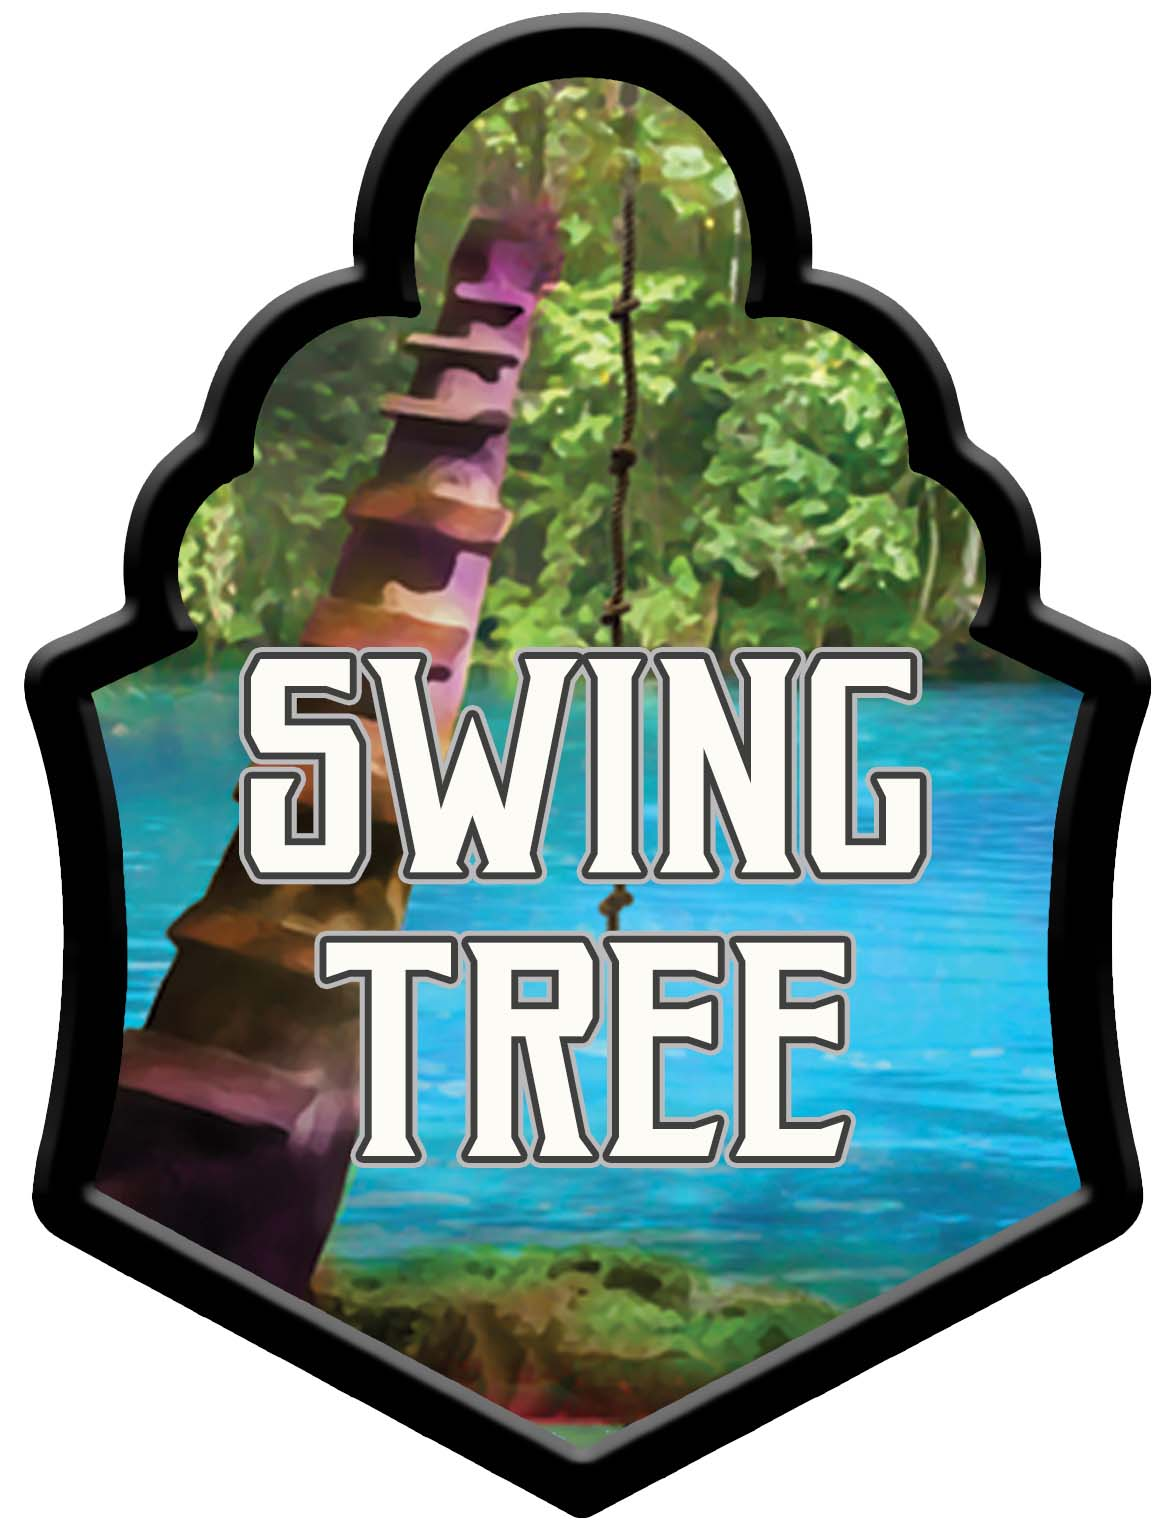 Swing Tree - New England style IPA with Apricot